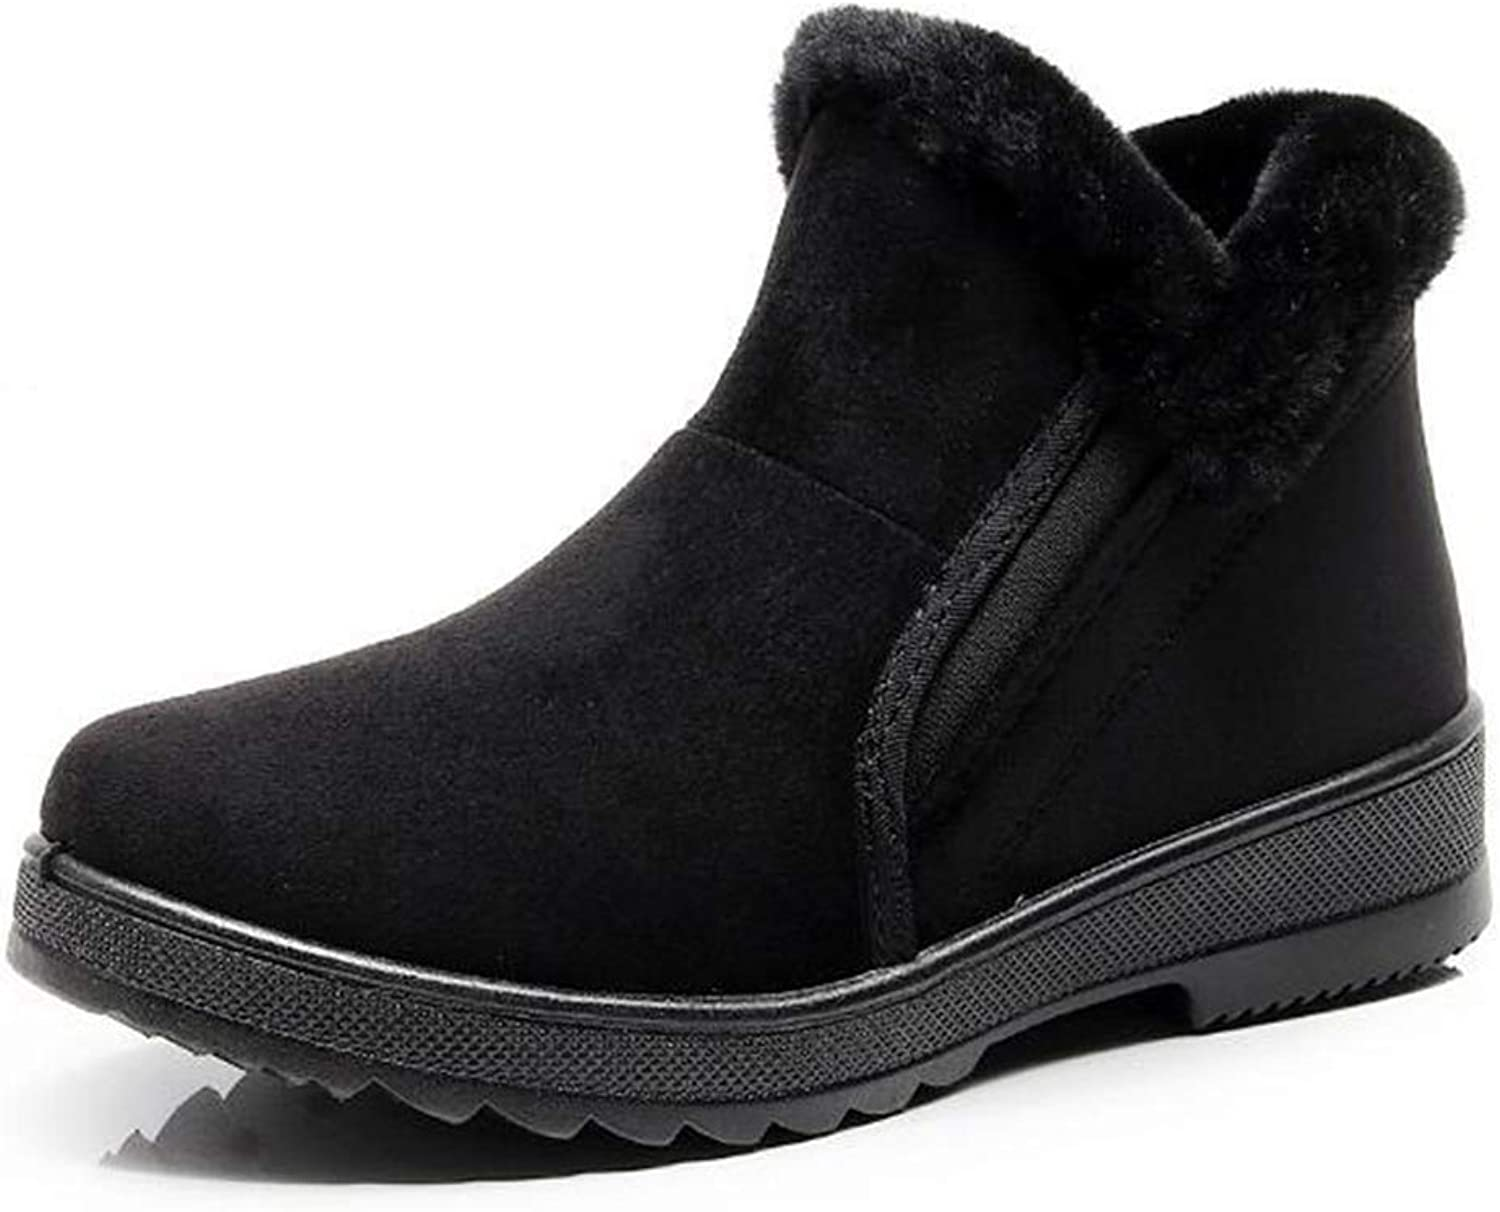 Zarbrina Womens Fur Lined Flat Platform Ankle Boots Winter Round Toe Rubber Sole Short Plush Slip On Warm Snow shoes